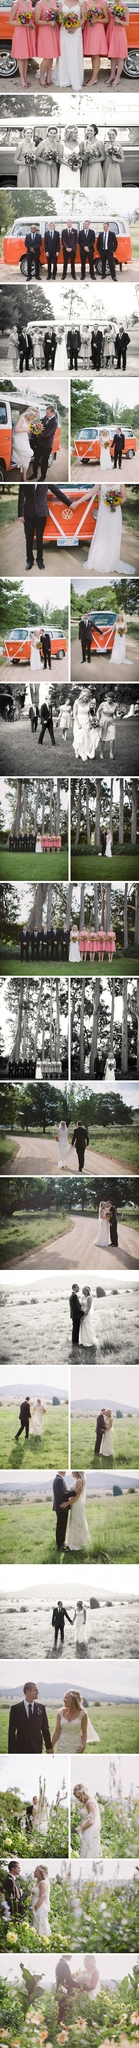 Rustic Lanyon Homestead Wedding Photos